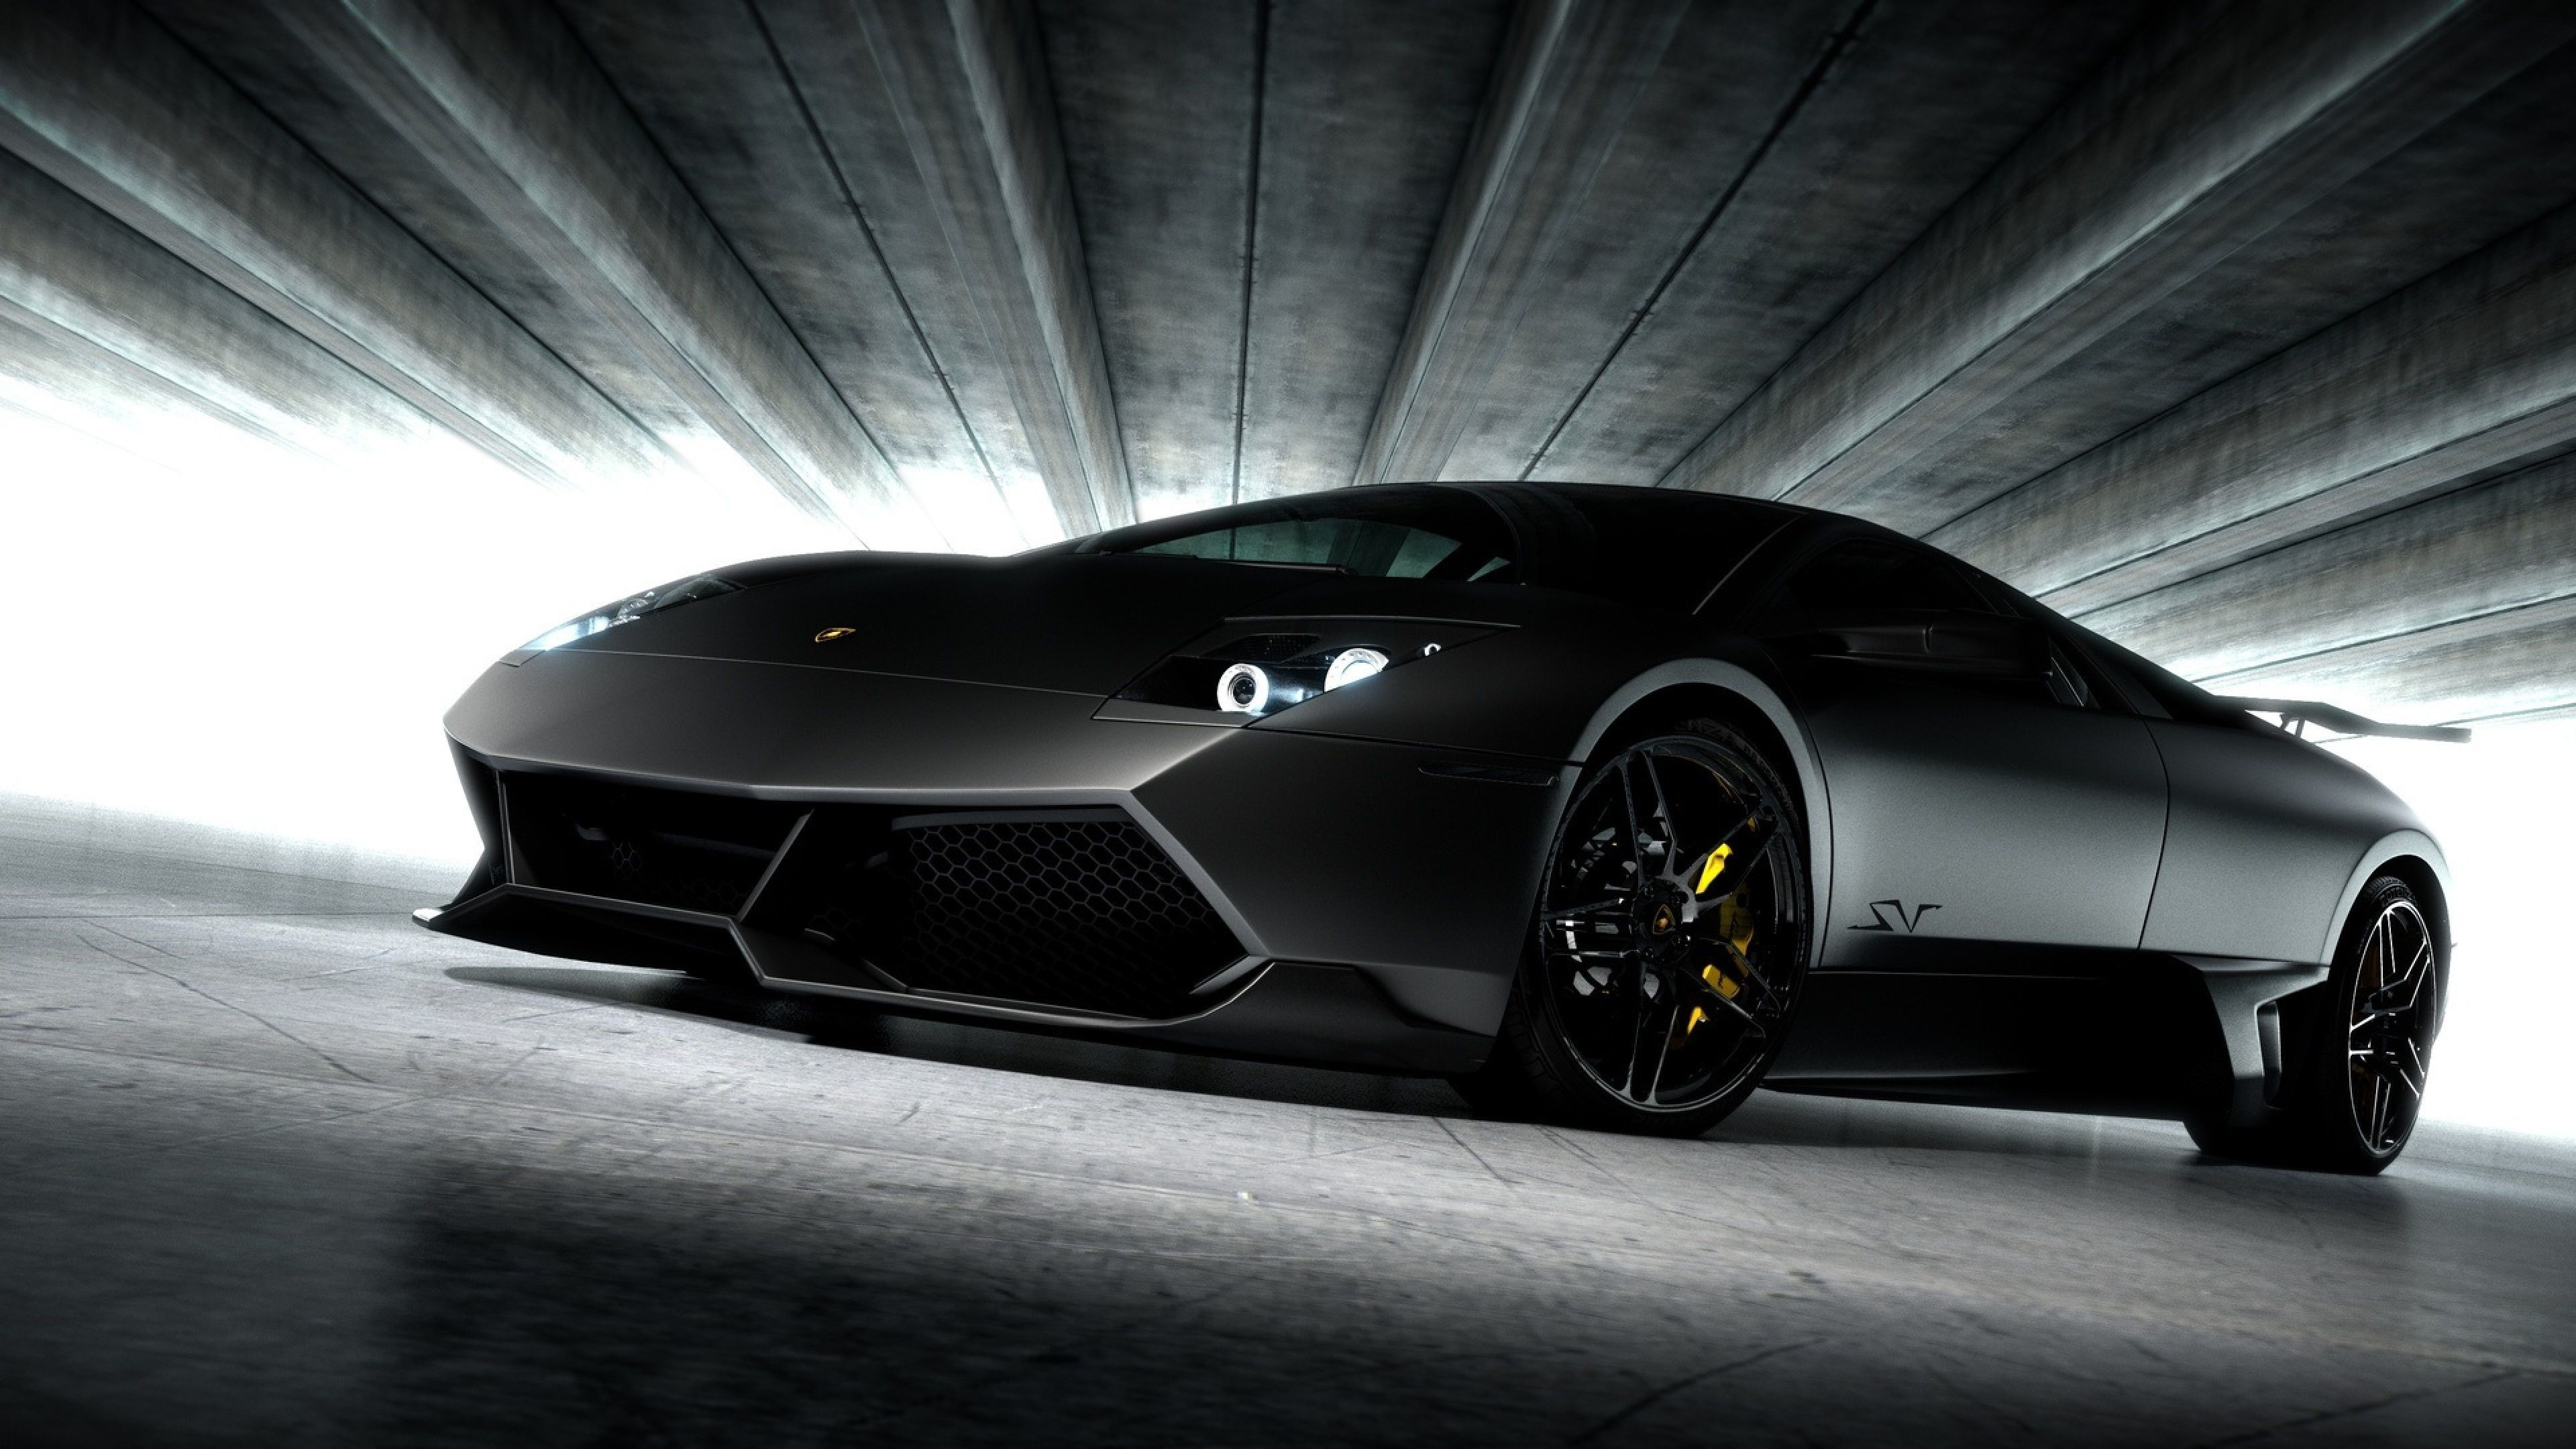 Res: 3840x2160, Lamborghini Murcielago Wallpaper Mobile #IPD | Cars | Pinterest | Lamborghini, Lamborghini gallardo and Cars